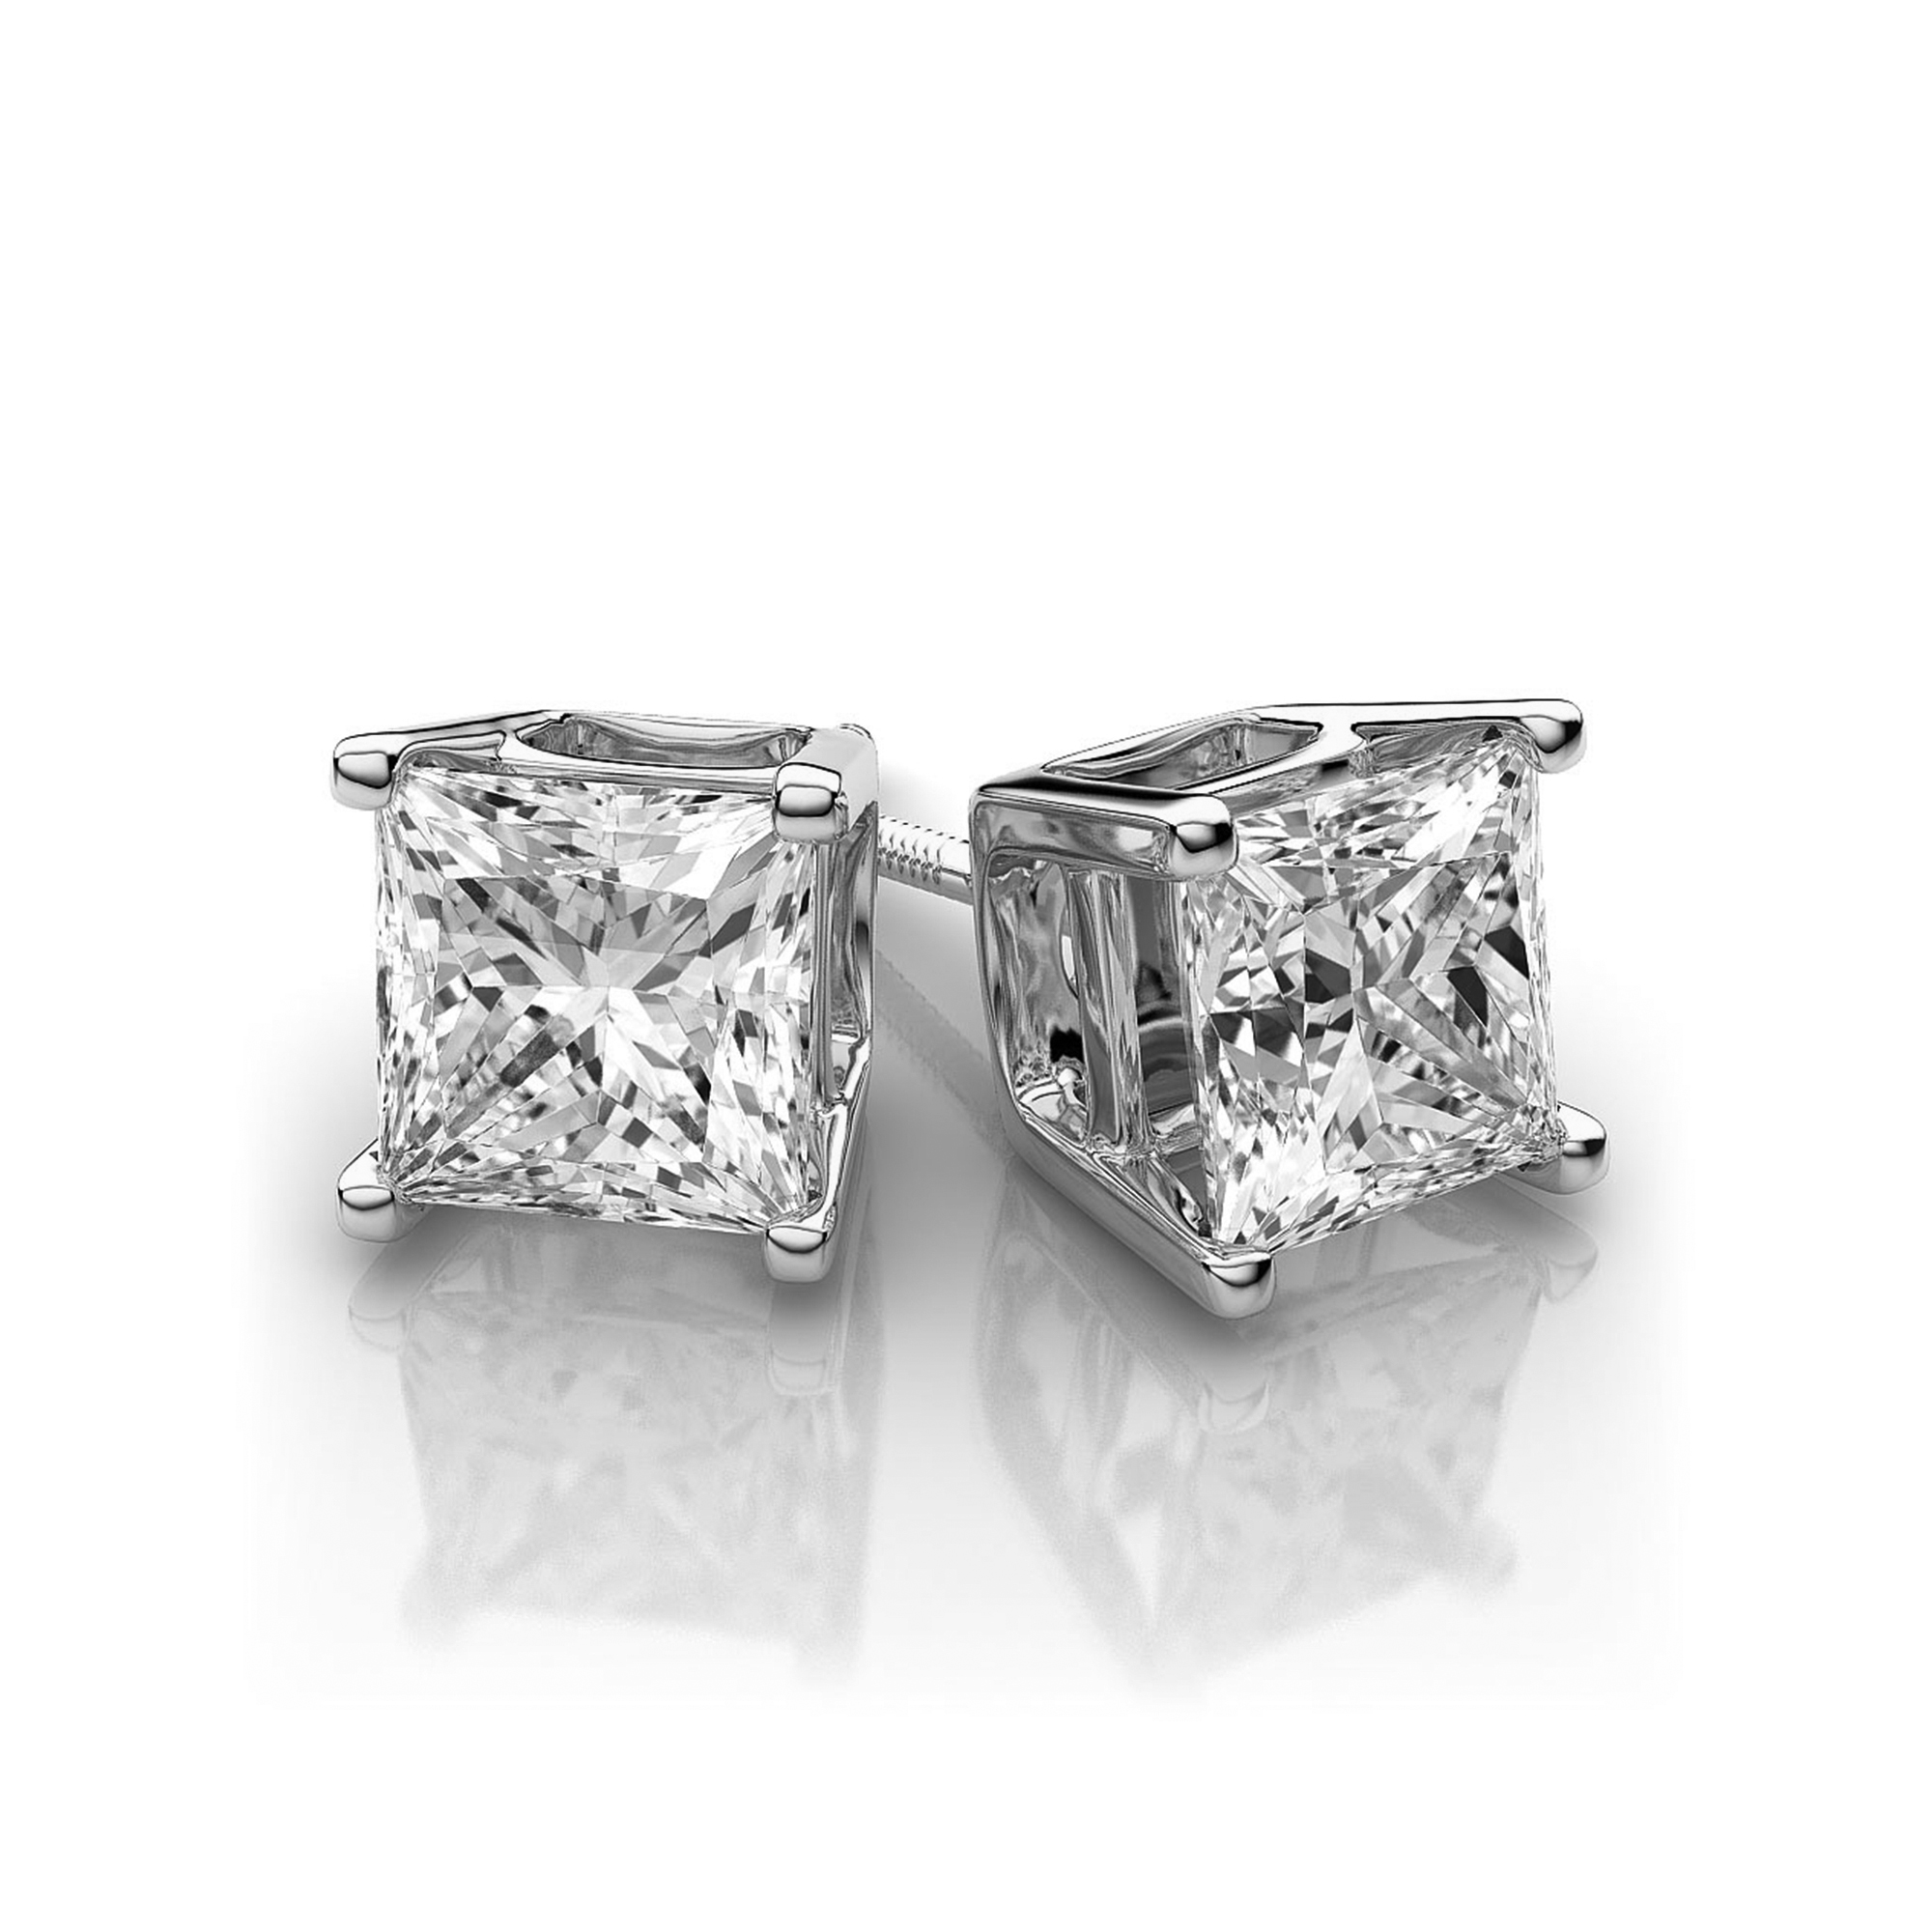 gift colvard moissanite stud valentines and poshclassymom studs ideas day earrings charles diamond